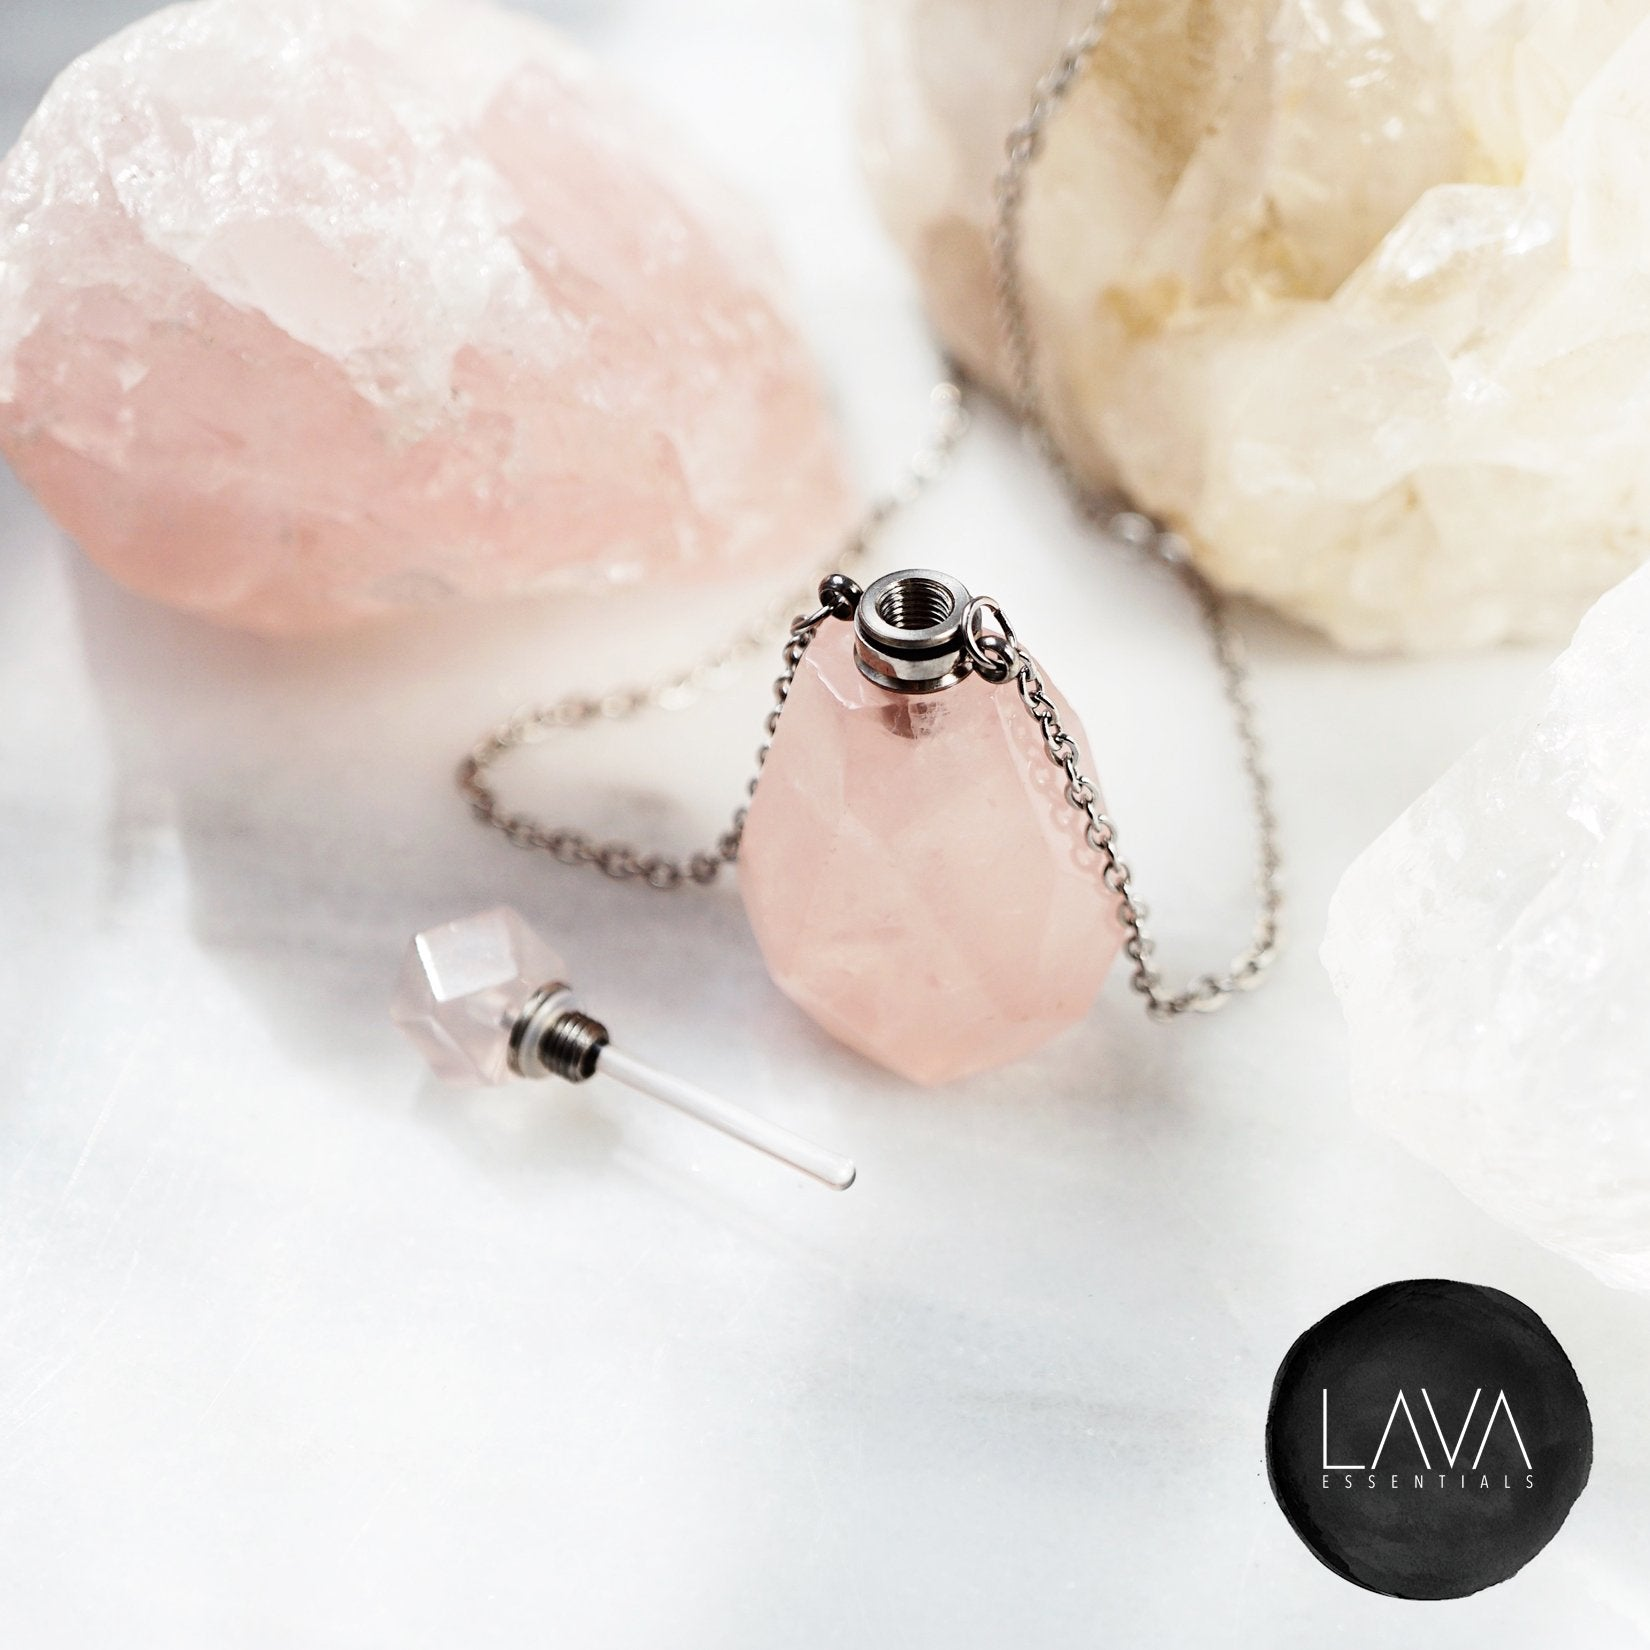 Rose Quartz Petite Gemstone Perfume Bottle Essential Oil Necklace with Glass Wand Applicator [S]+[G] - Lava Essential Oils